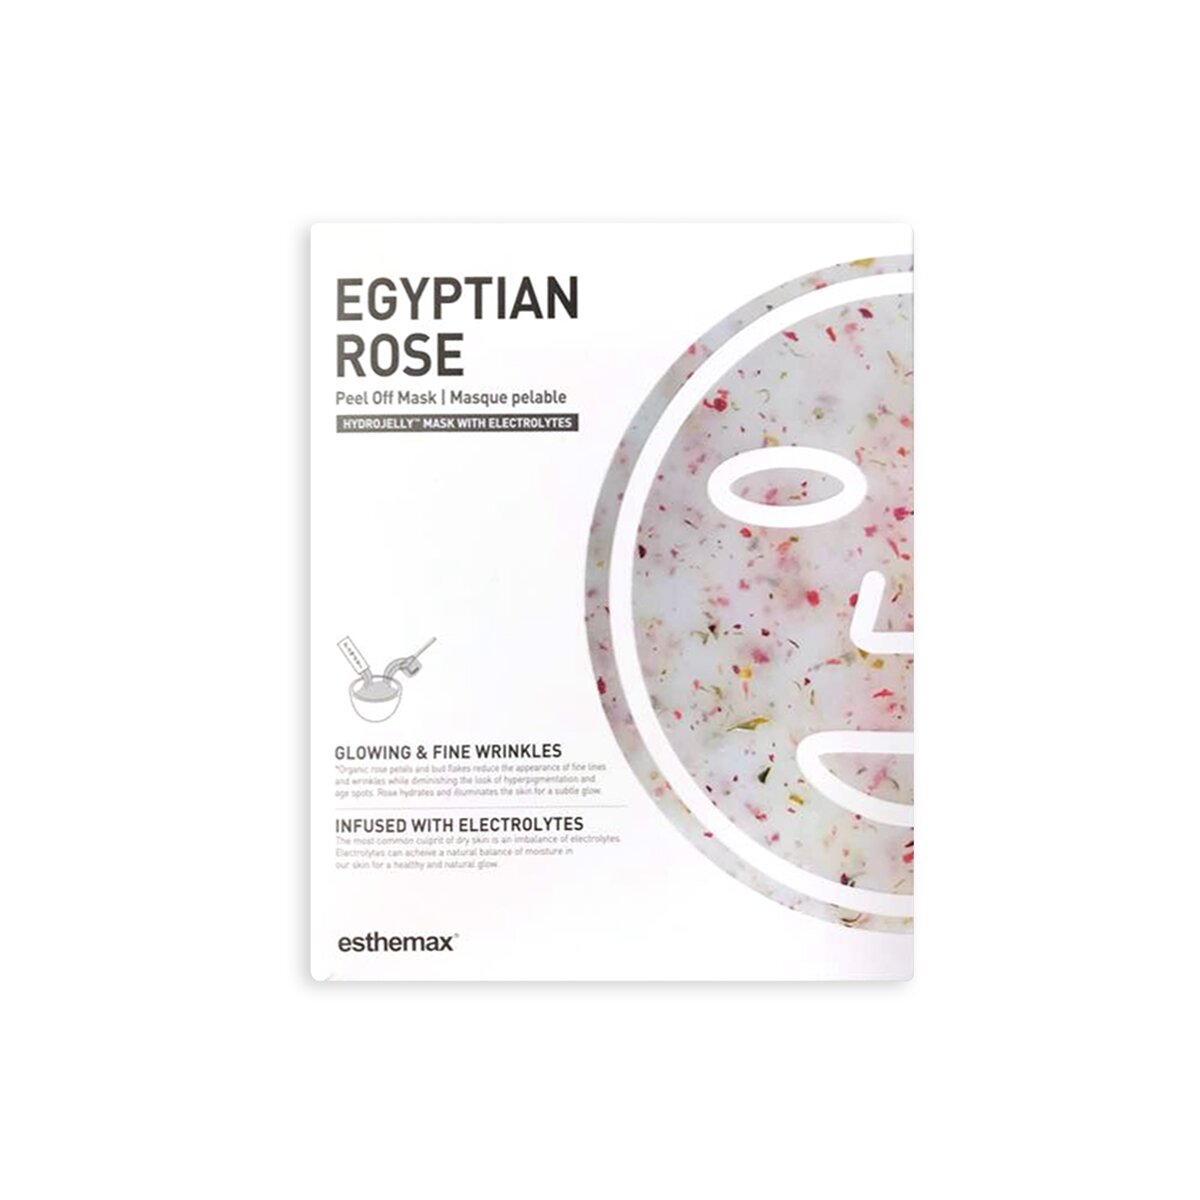 Egyptian Rose Jelly Mask packaging